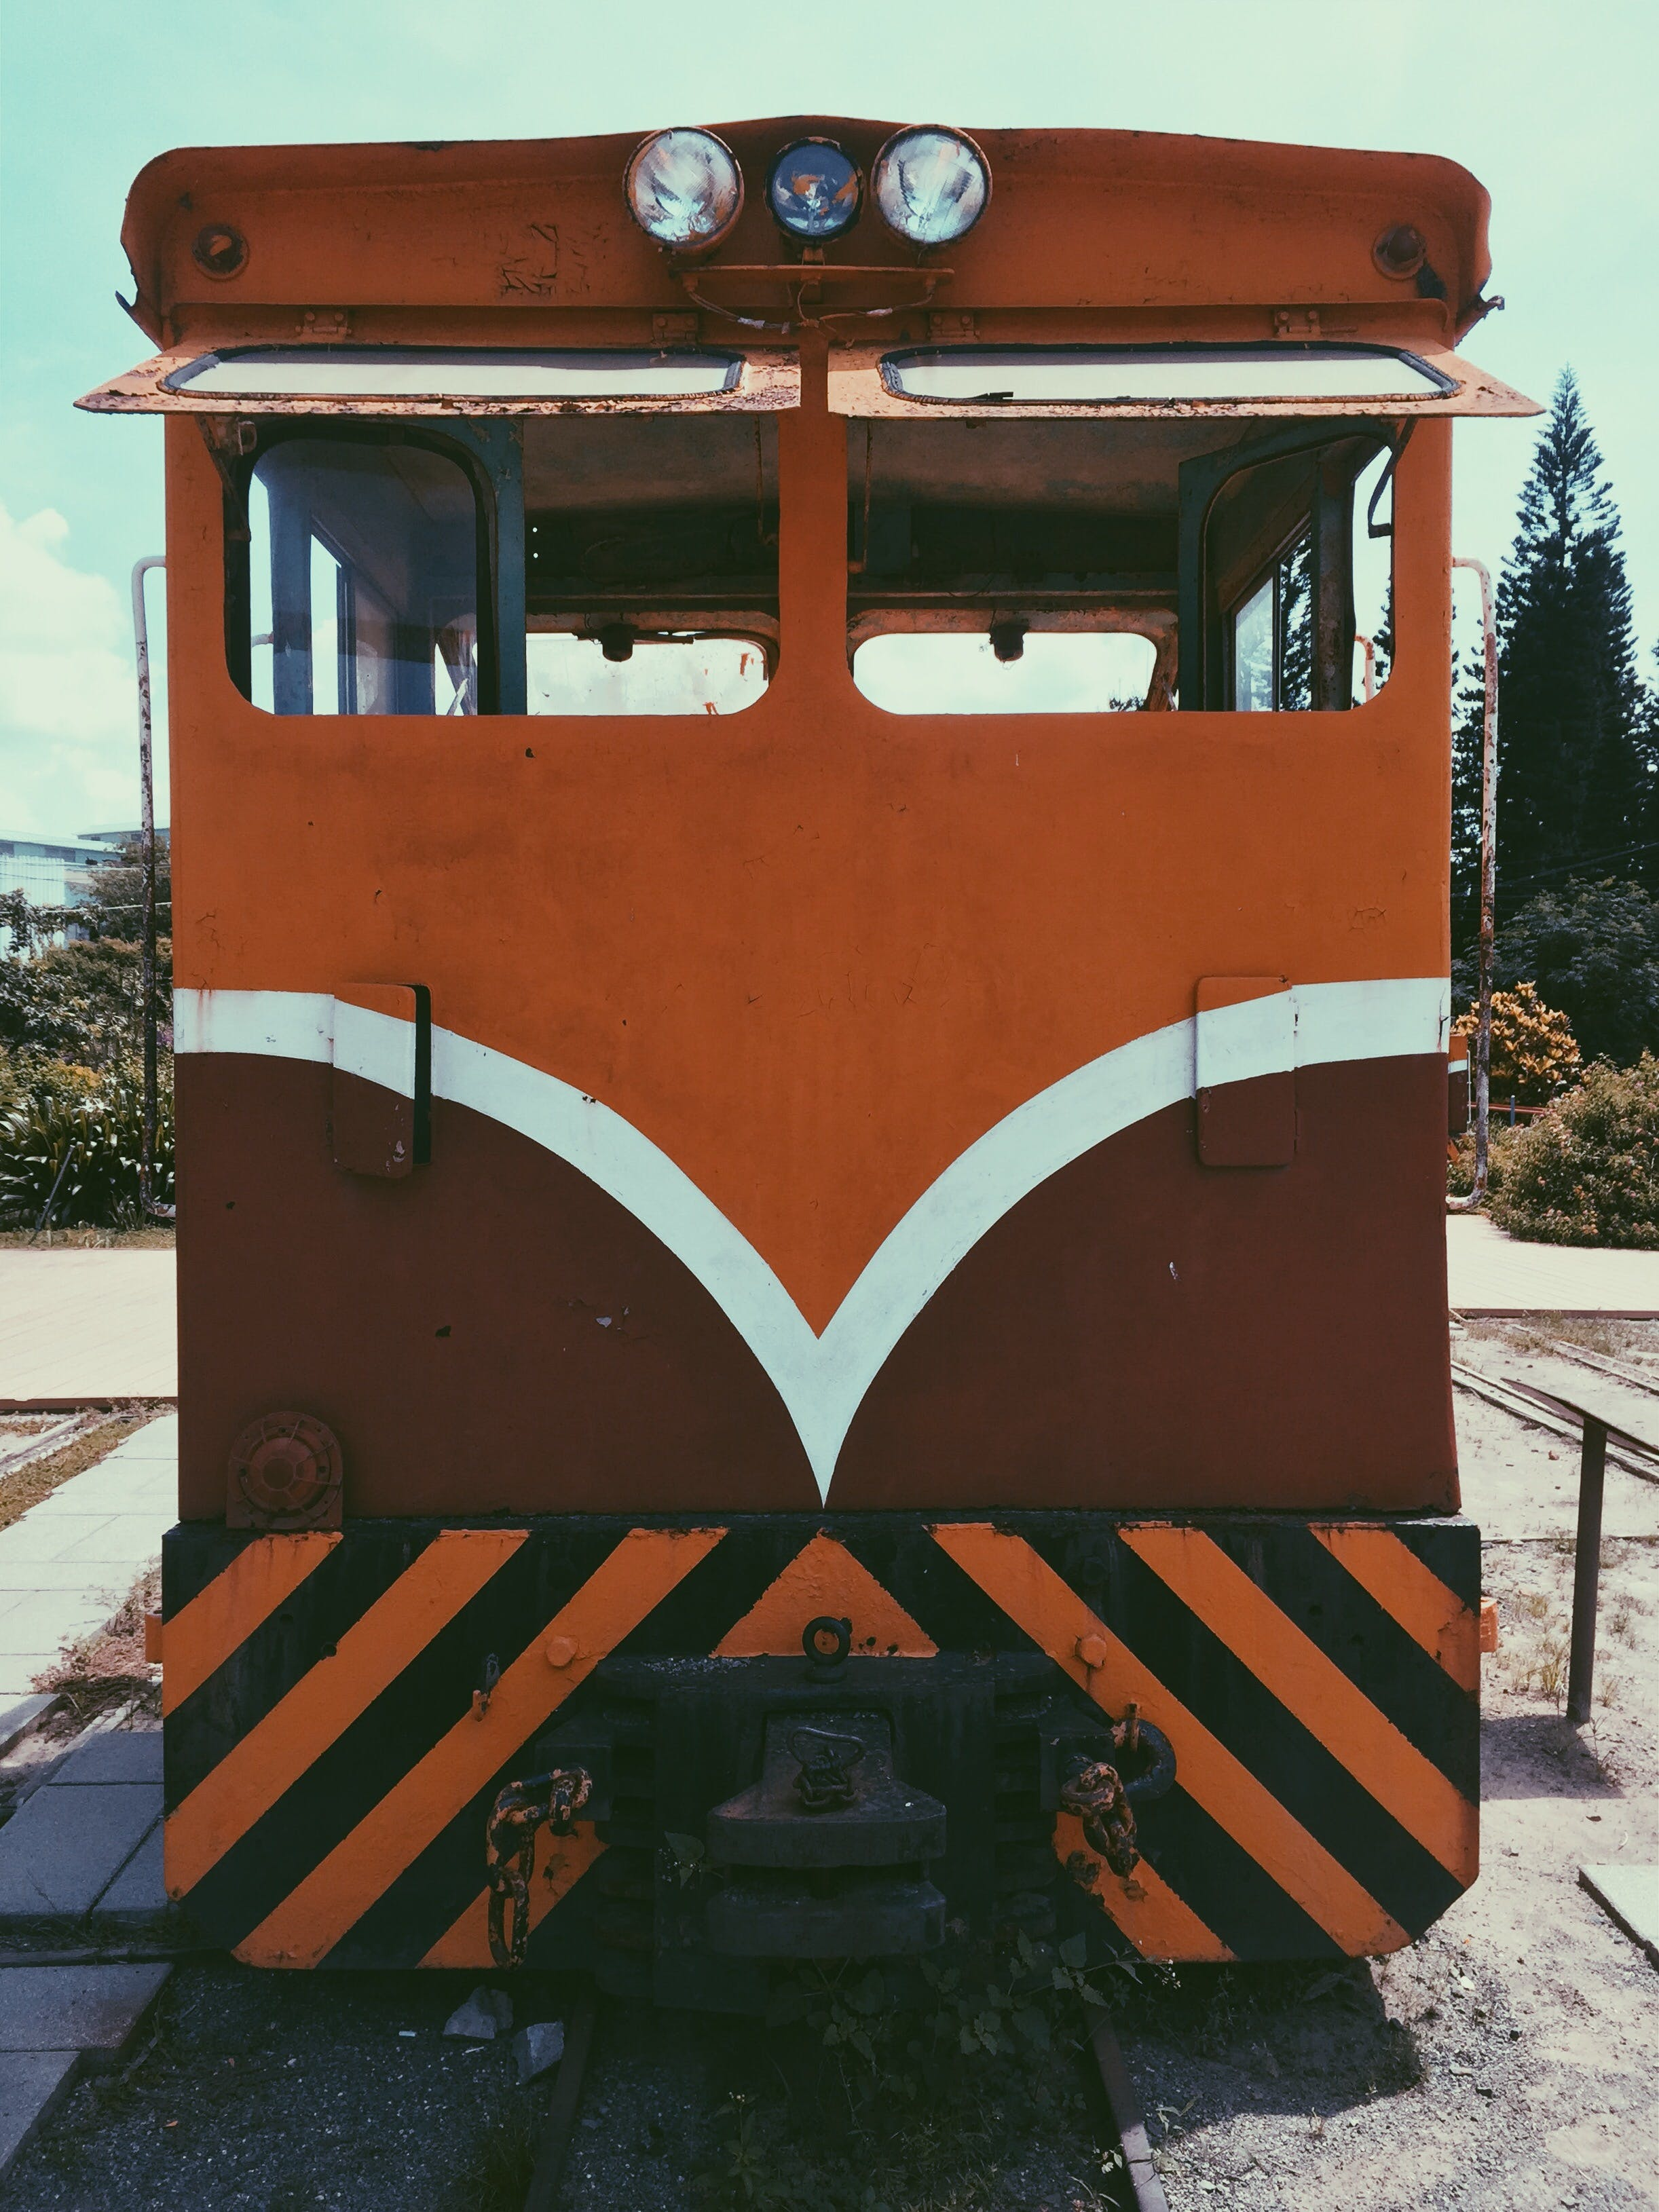 Orange, White, and Brown Train